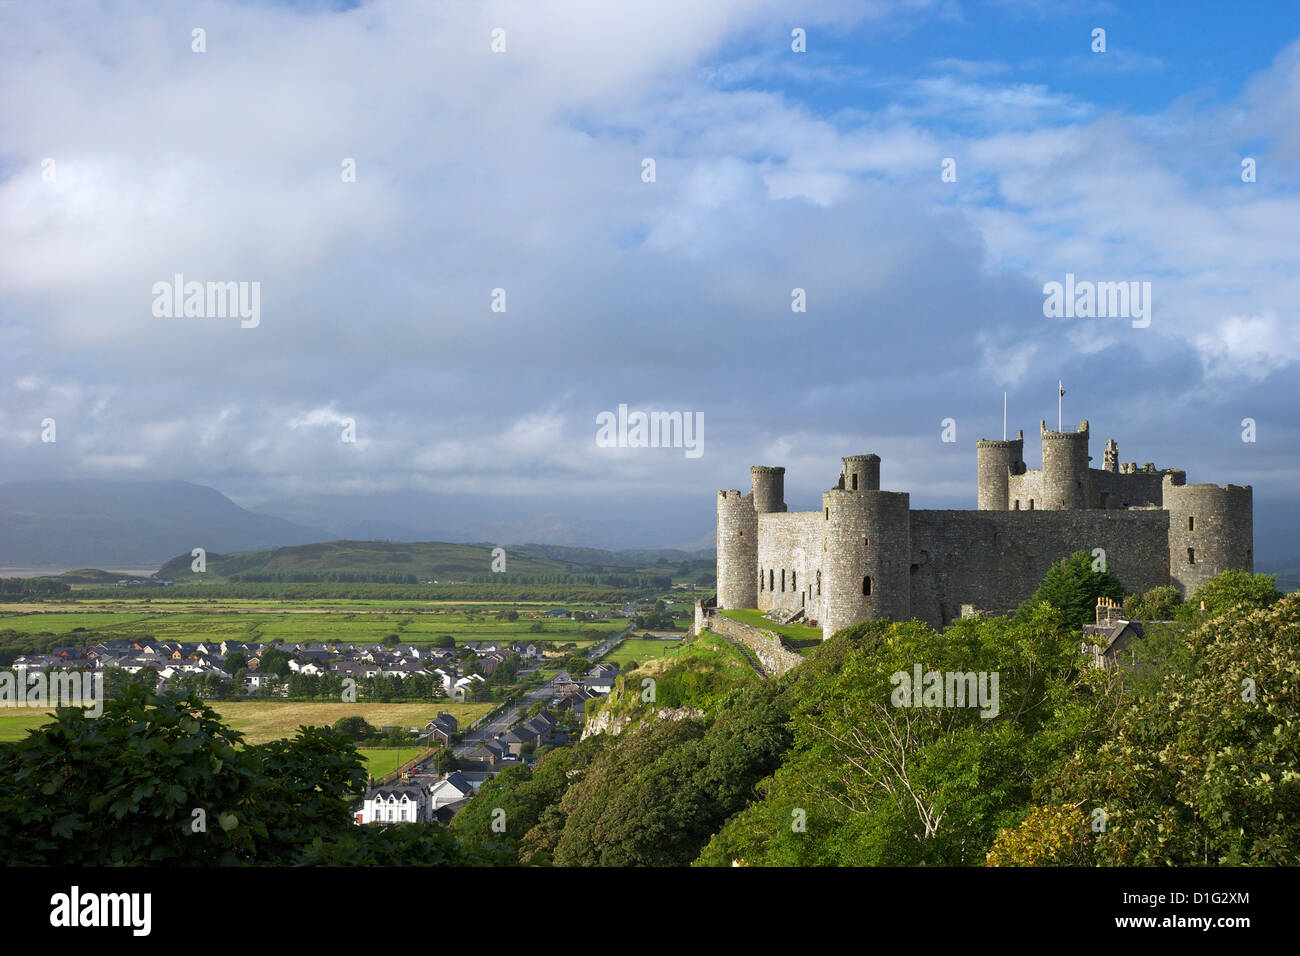 Harlech Castle in summer sunshine, UNESCO World Heritage Site, Gwynedd, Wales, United Kingdom, Europe - Stock Image